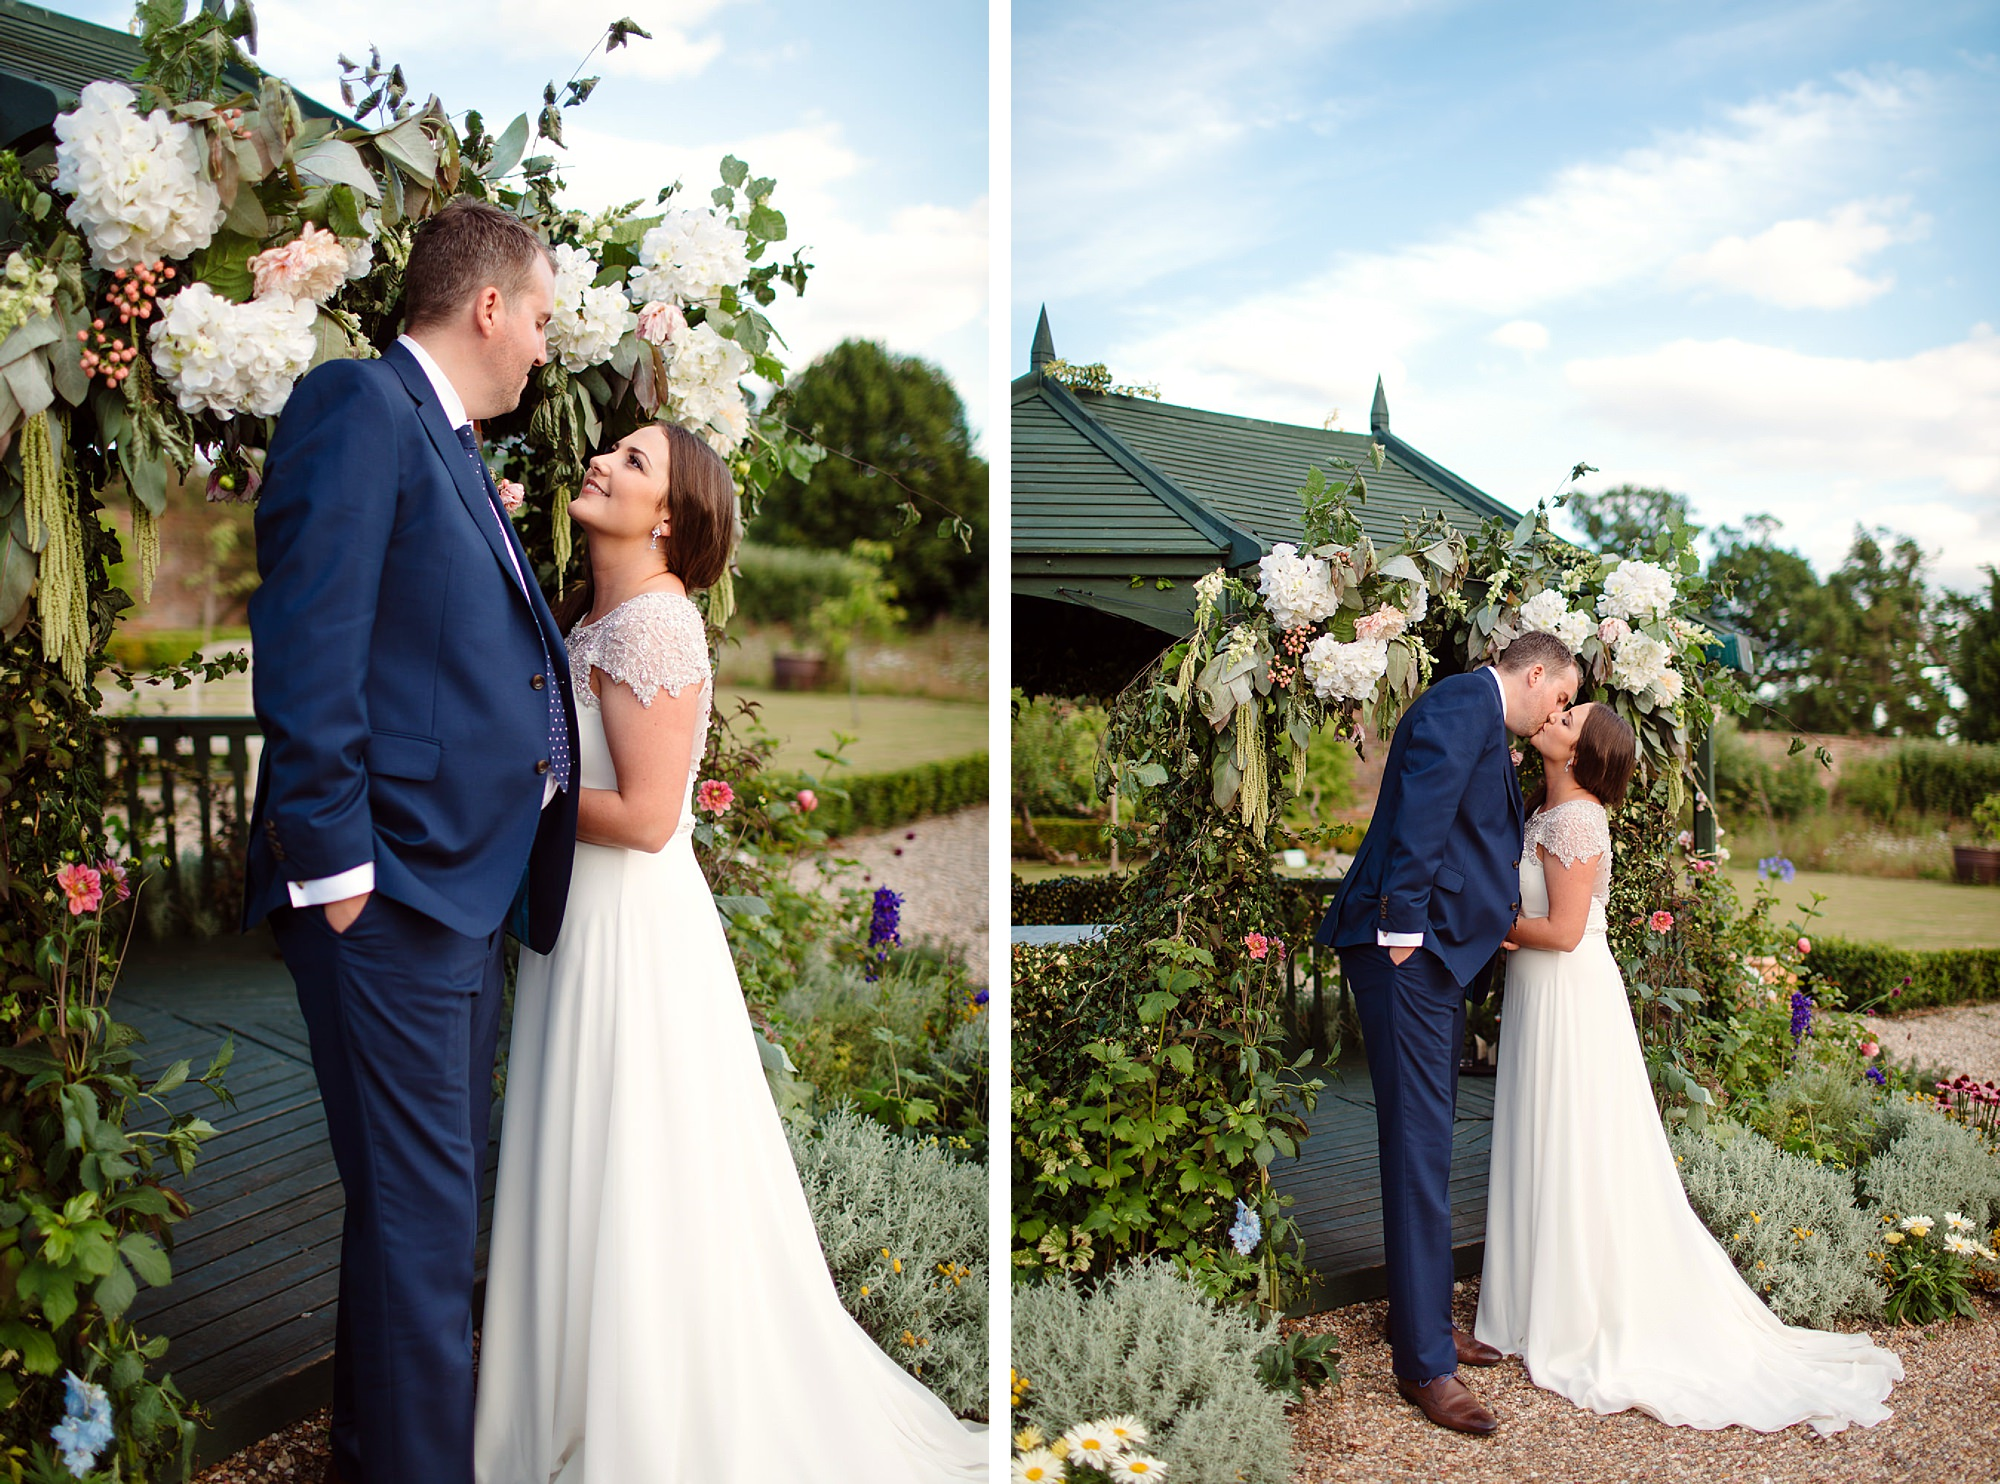 fun outdoor wedding bride and groom at secret garden gazebo